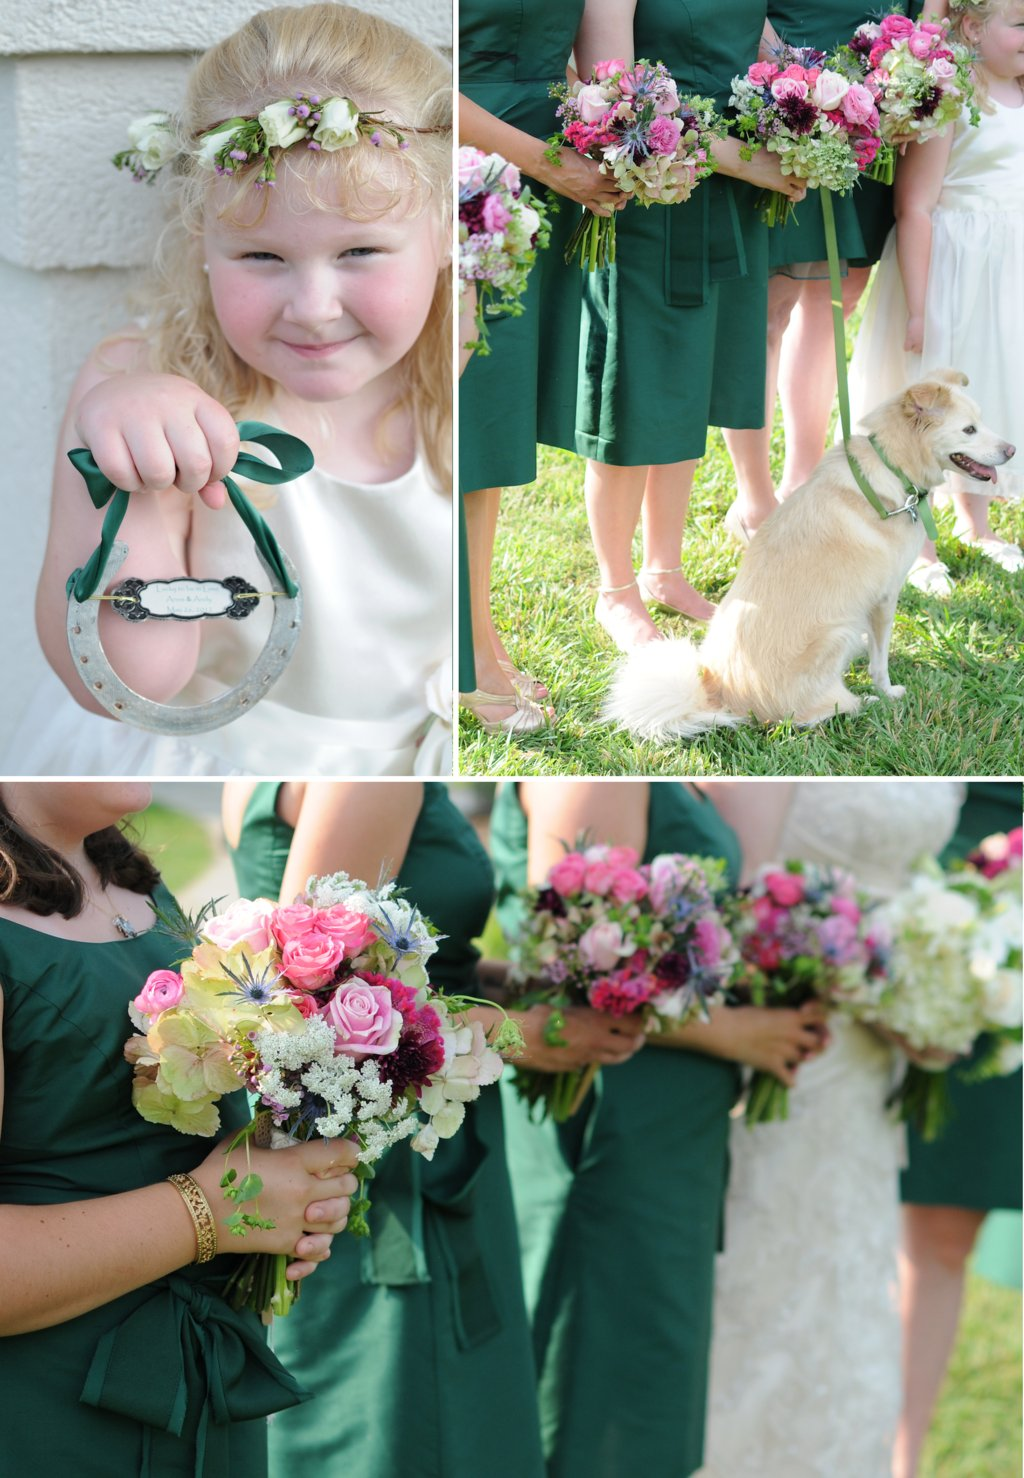 Elegant-outdoor-wedding-forest-green-bridesmaid-dresses-colorful-bouquets-2.full